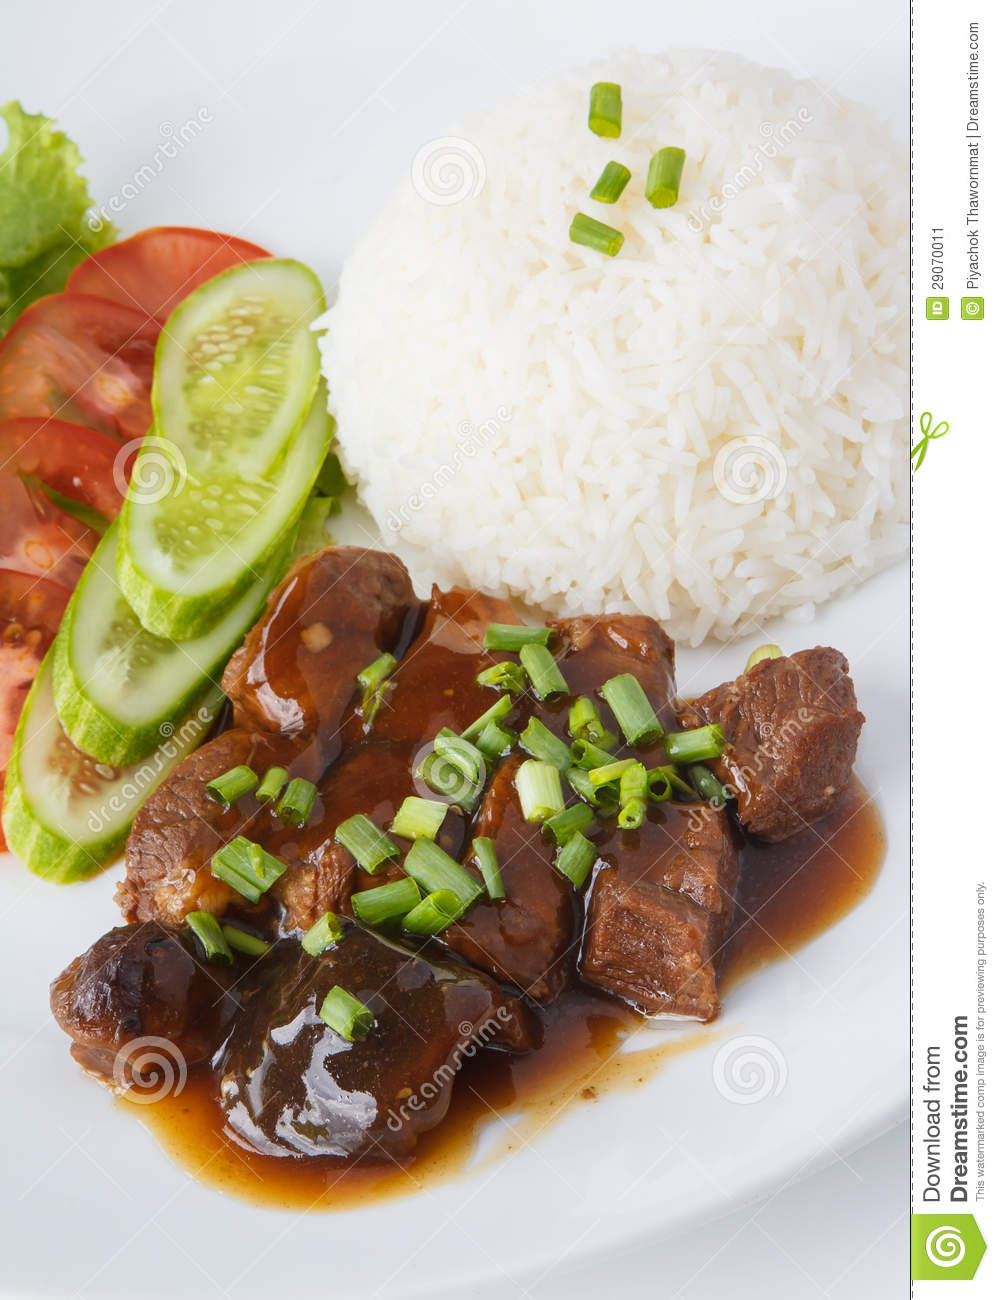 Thai Pork Stew With Steamed Rice Stock Image - Image: 29070011